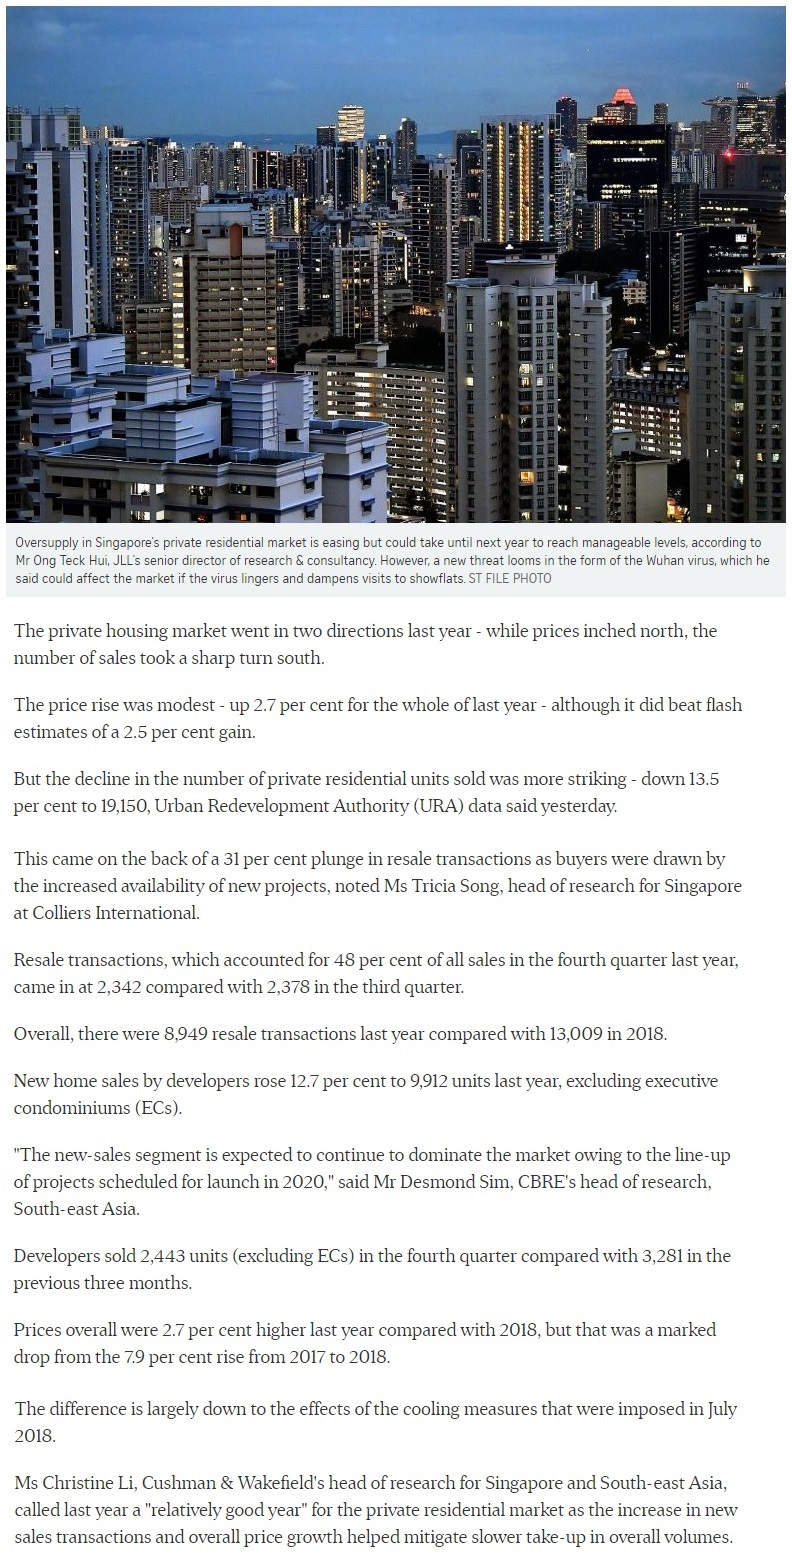 Midtown Modern - Singapore private home prices inch up 2.7% for 2019 Part 1